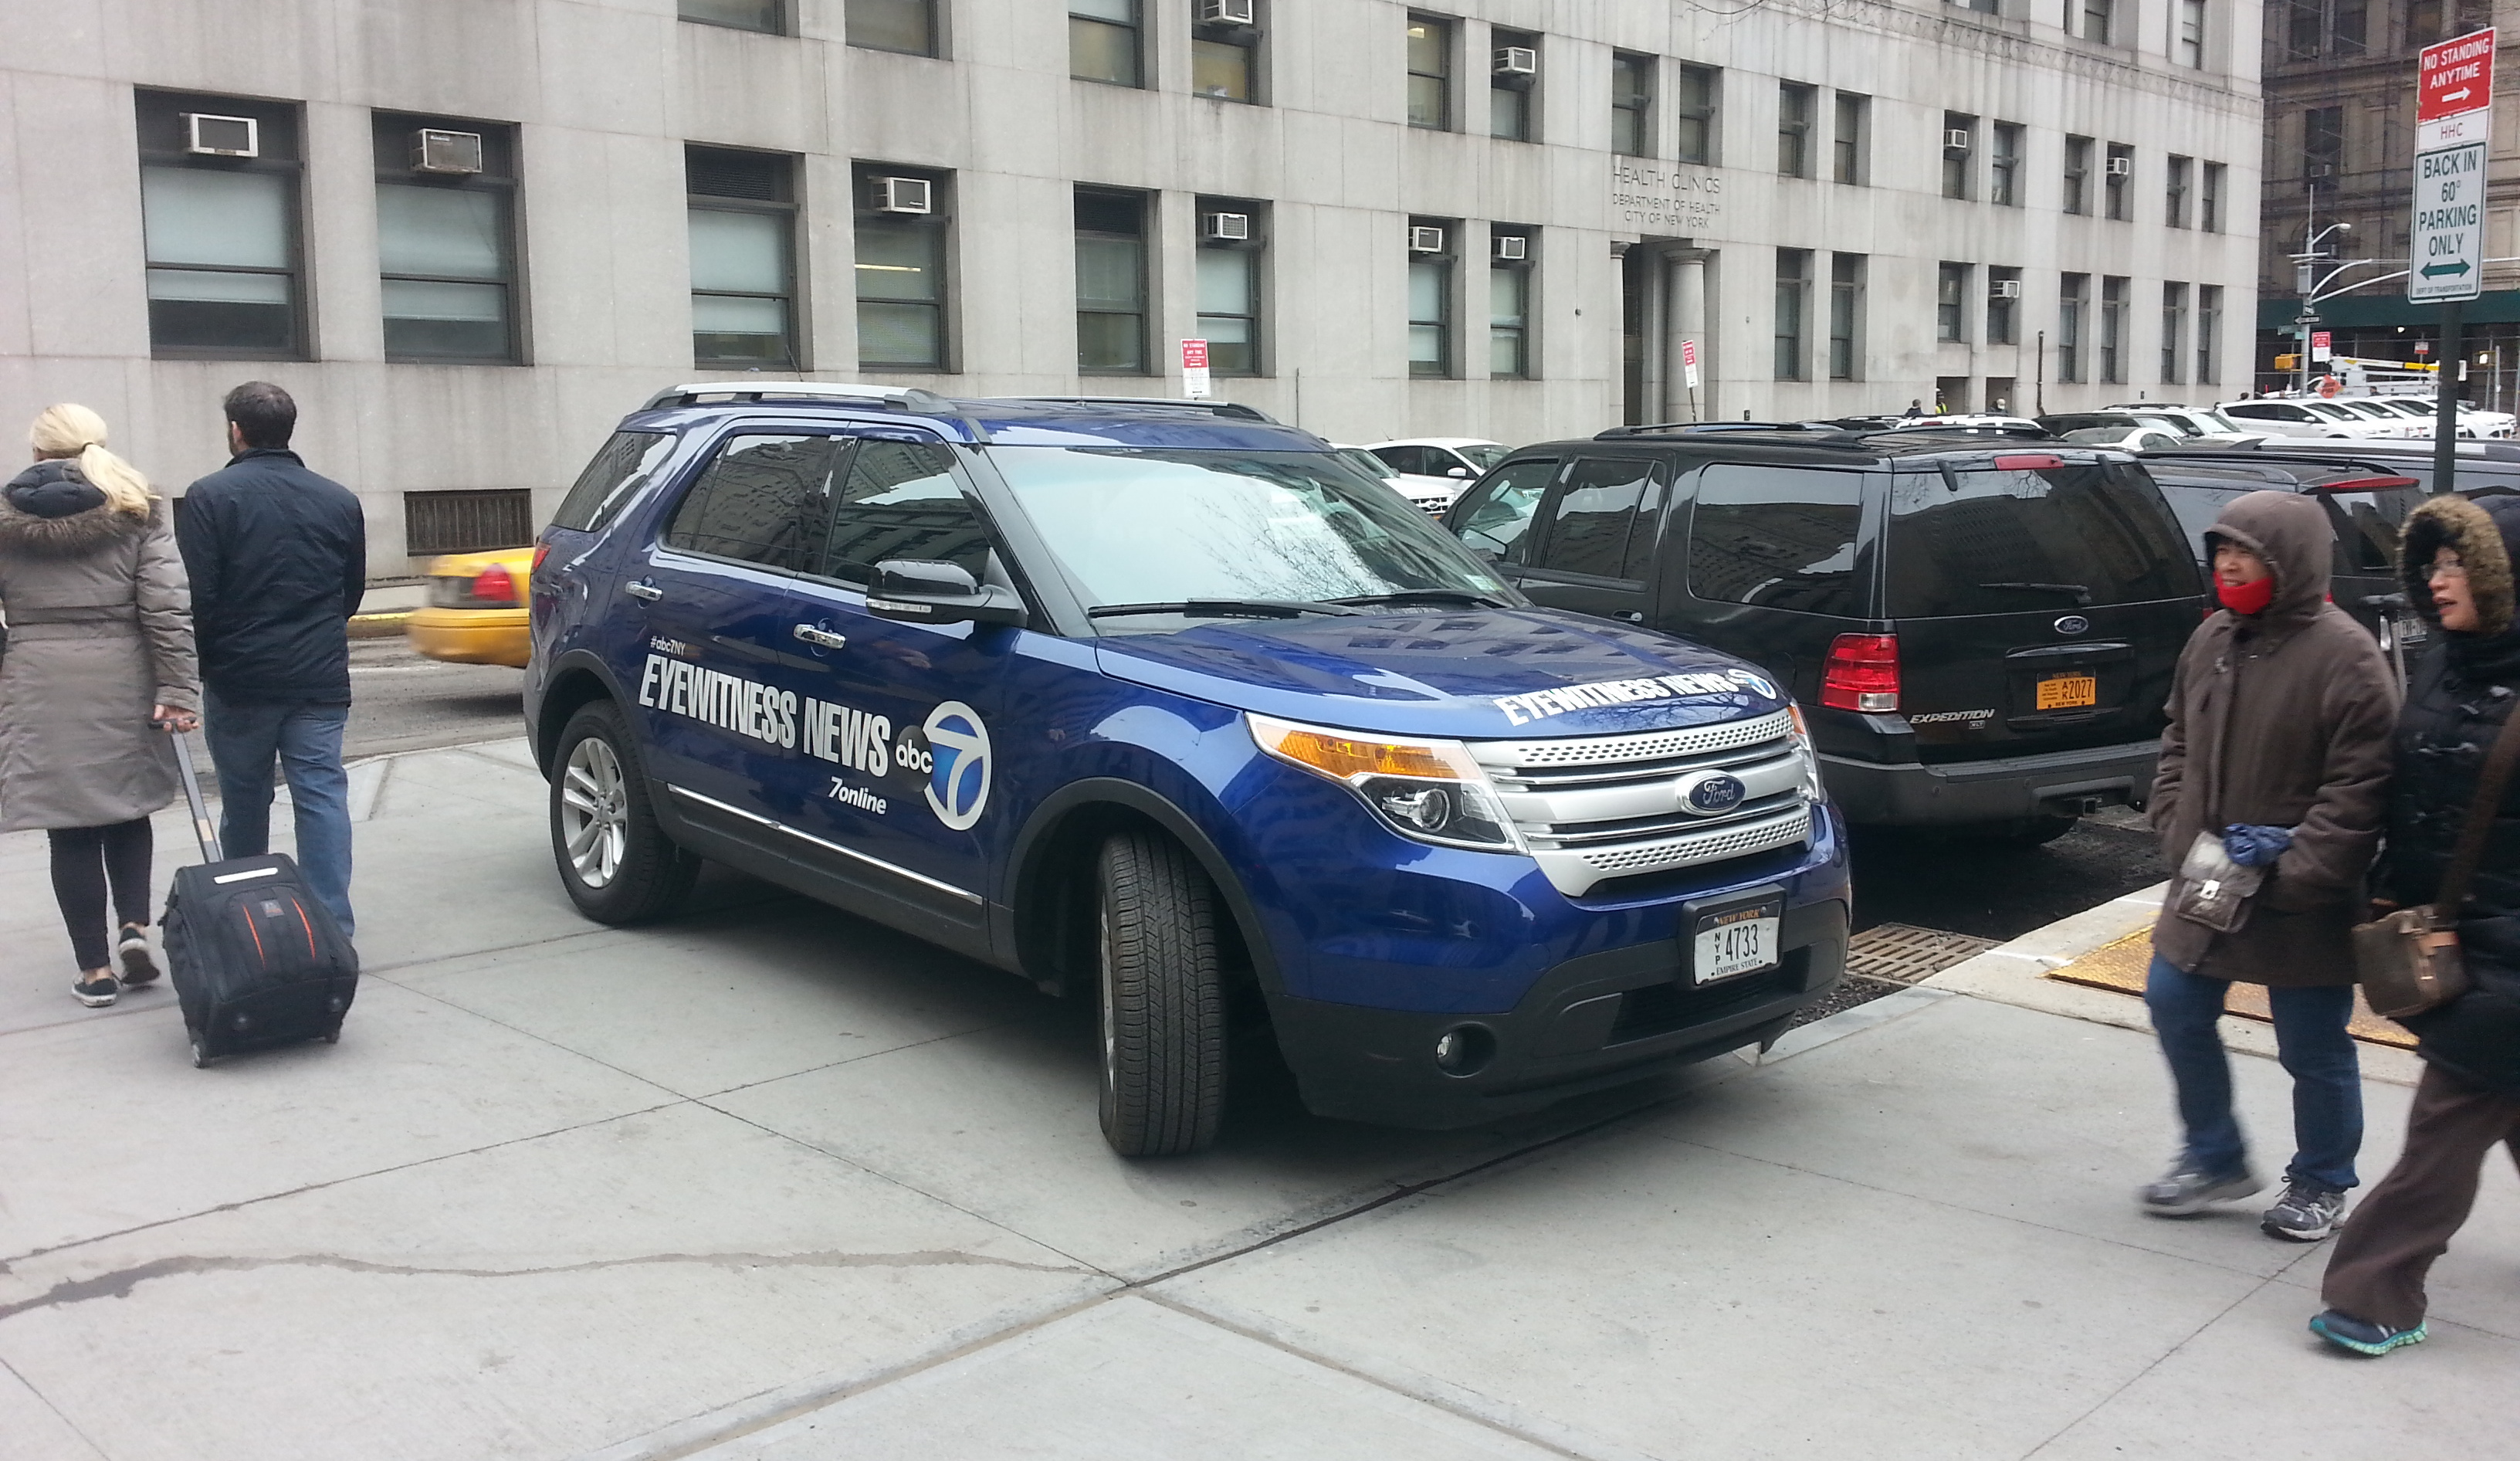 City Of Los Angeles Parking Ticket Extension >> Eyes on the Street: WABC News SUV *PWNS* This Sidewalk Extension   Streetsblog New York City